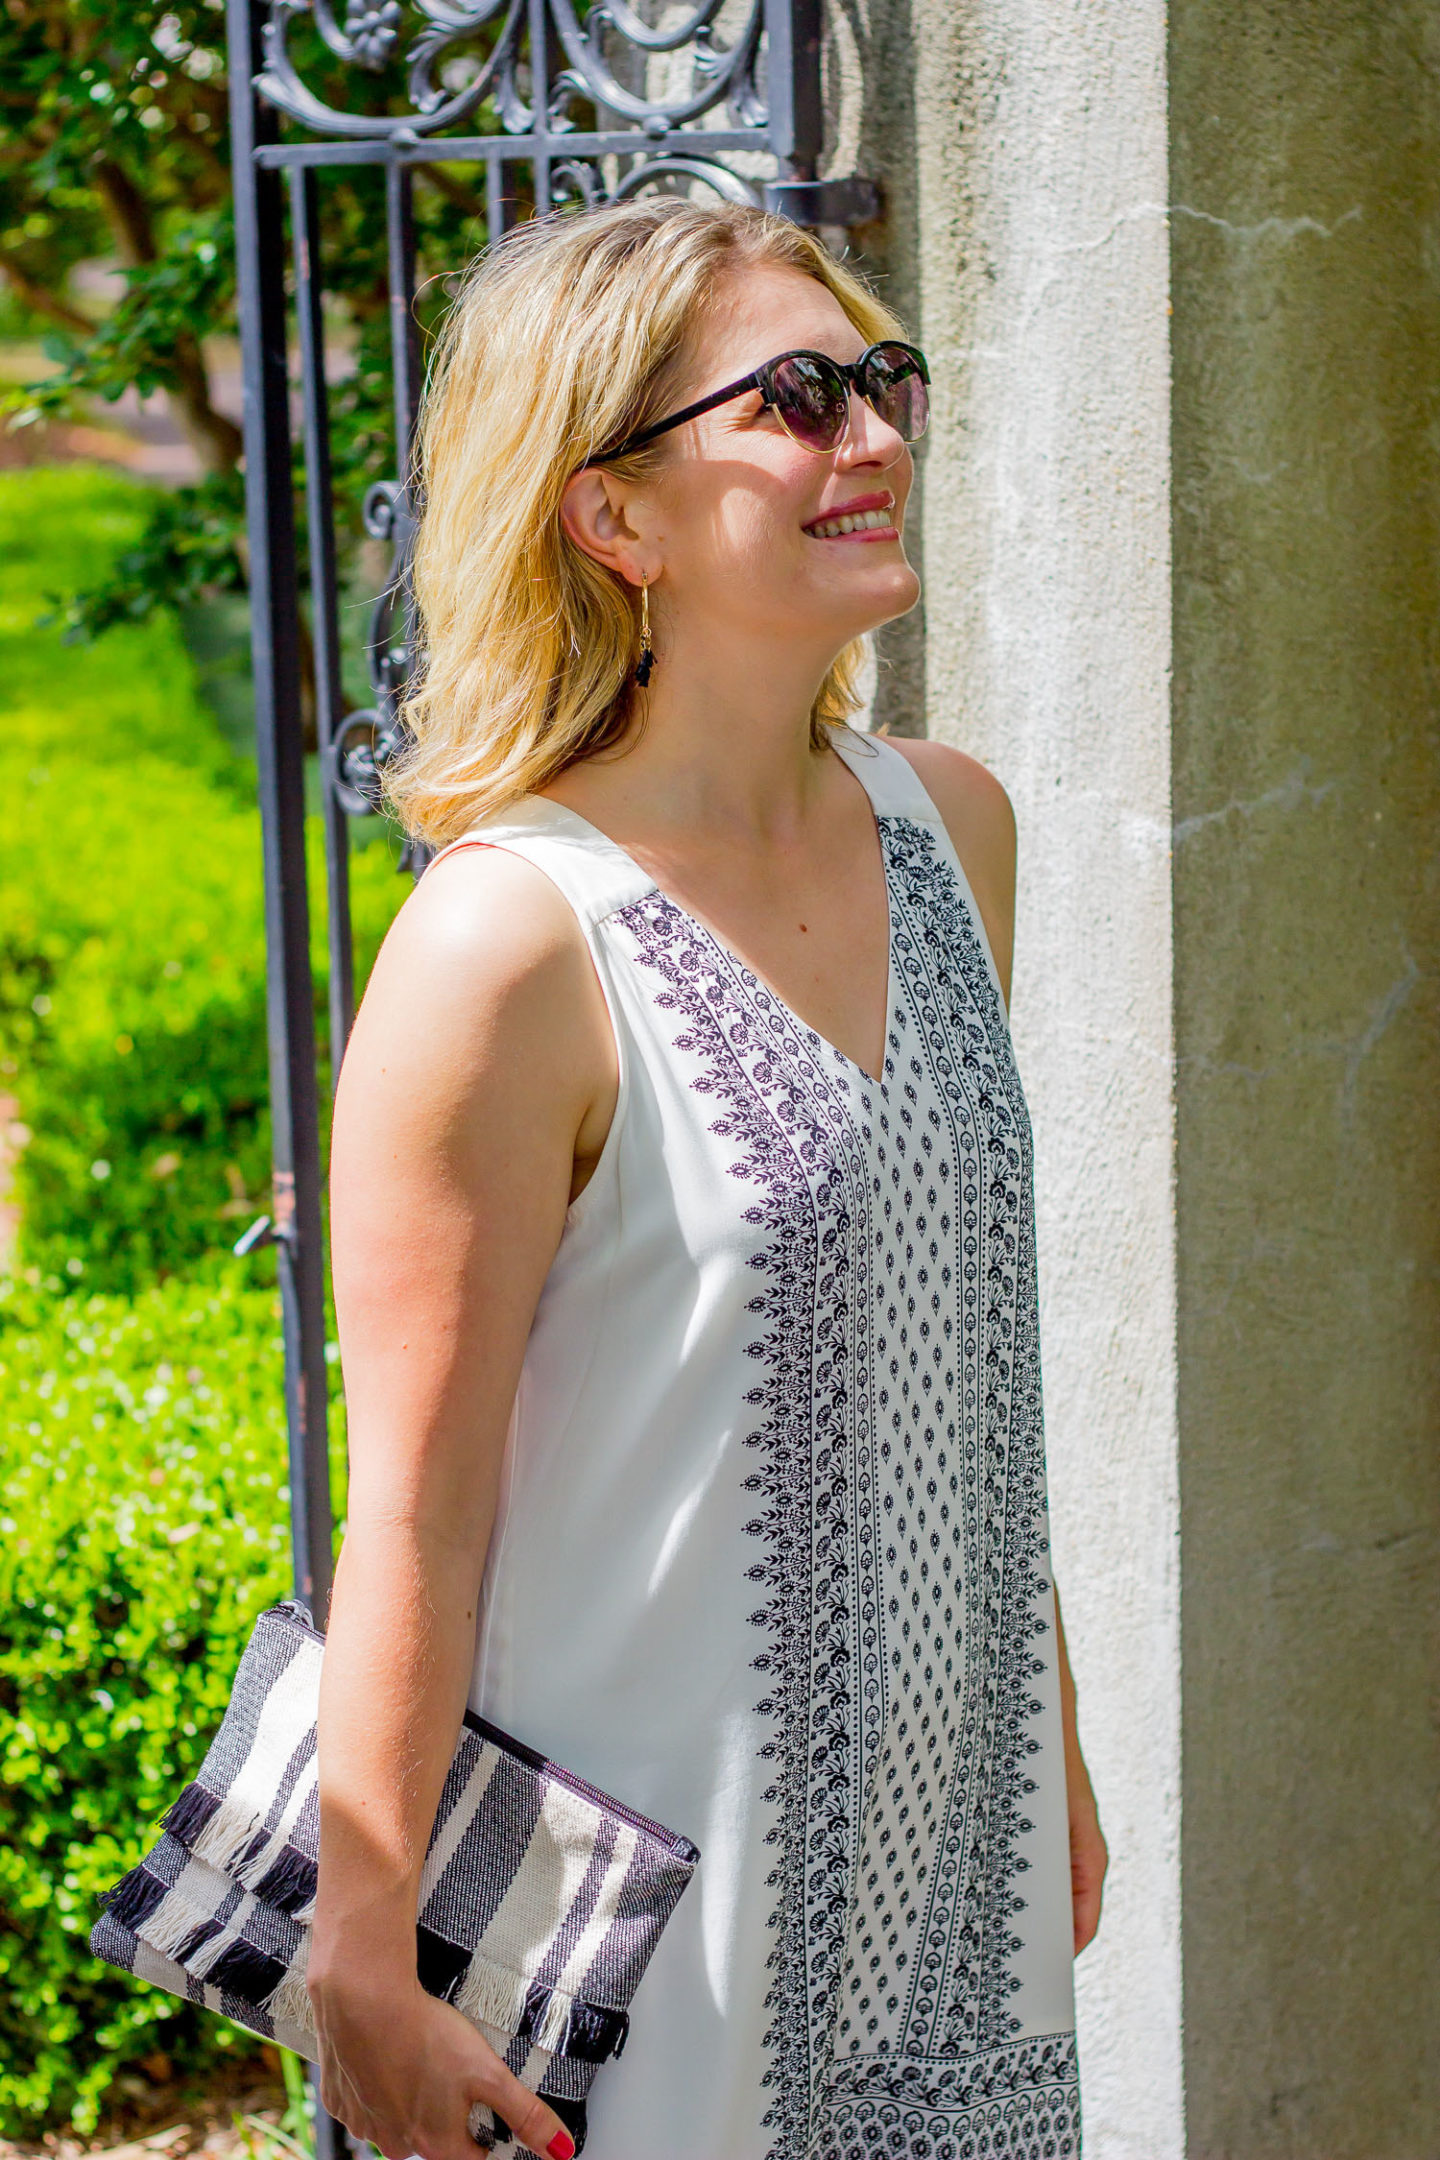 Summer white dress by Old Navy worn by Elise Giannasi